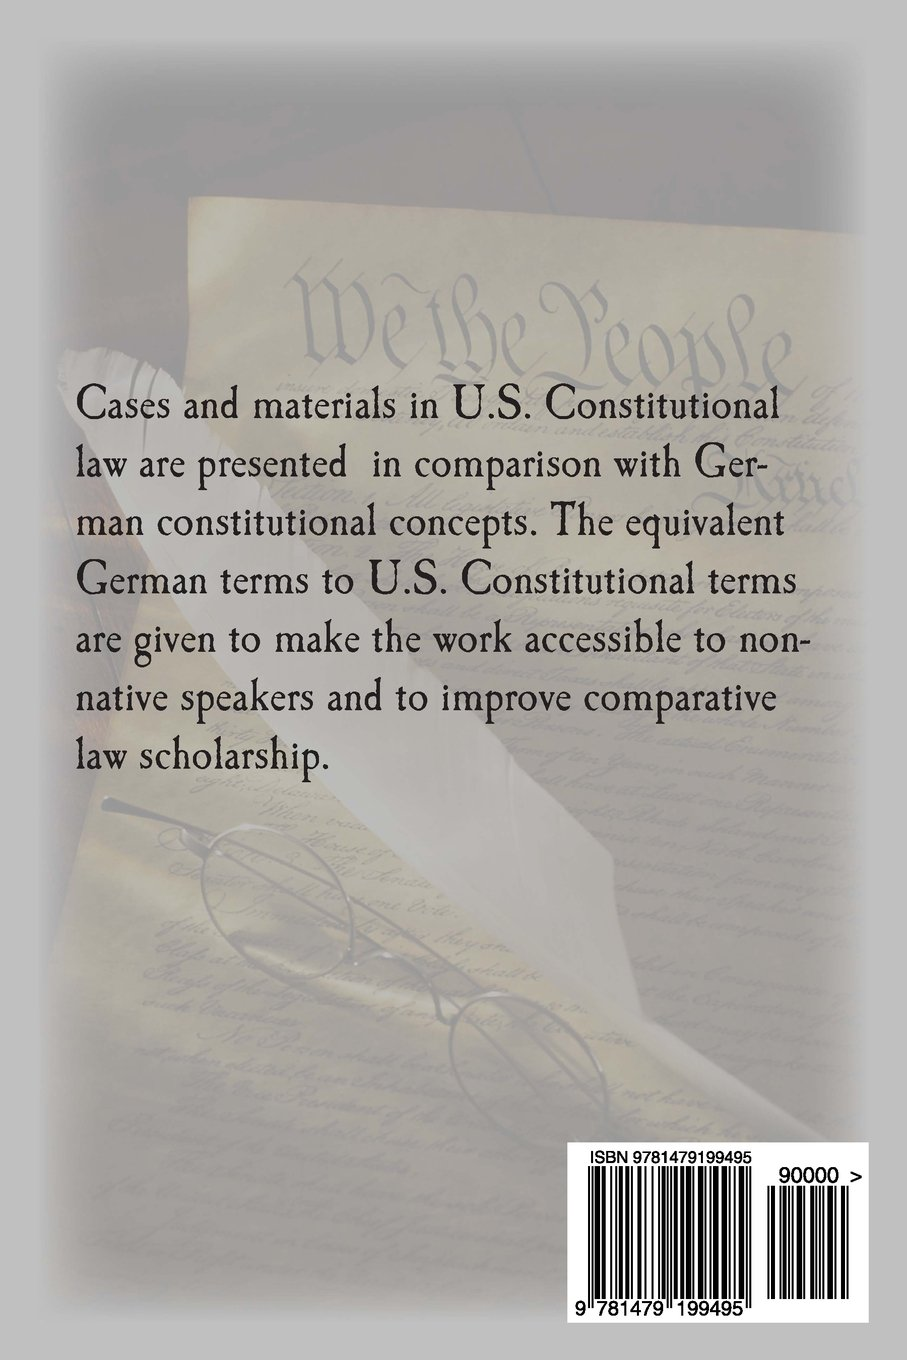 U.S. Constitutional Law for German Speaking Jurists